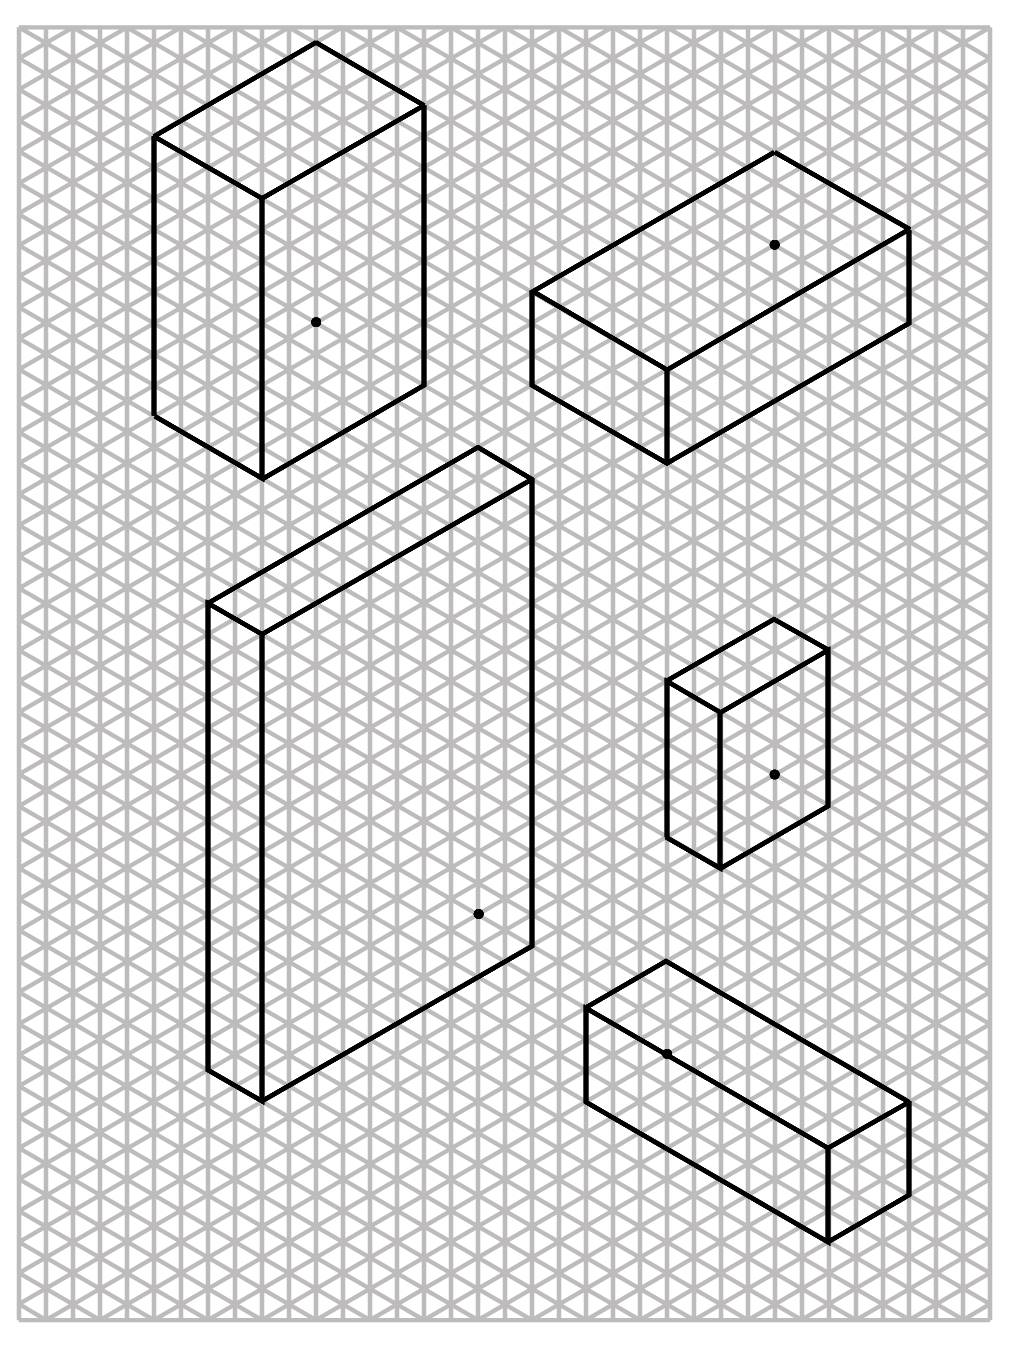 Isometric Sketch Paper An isometric drawing of a